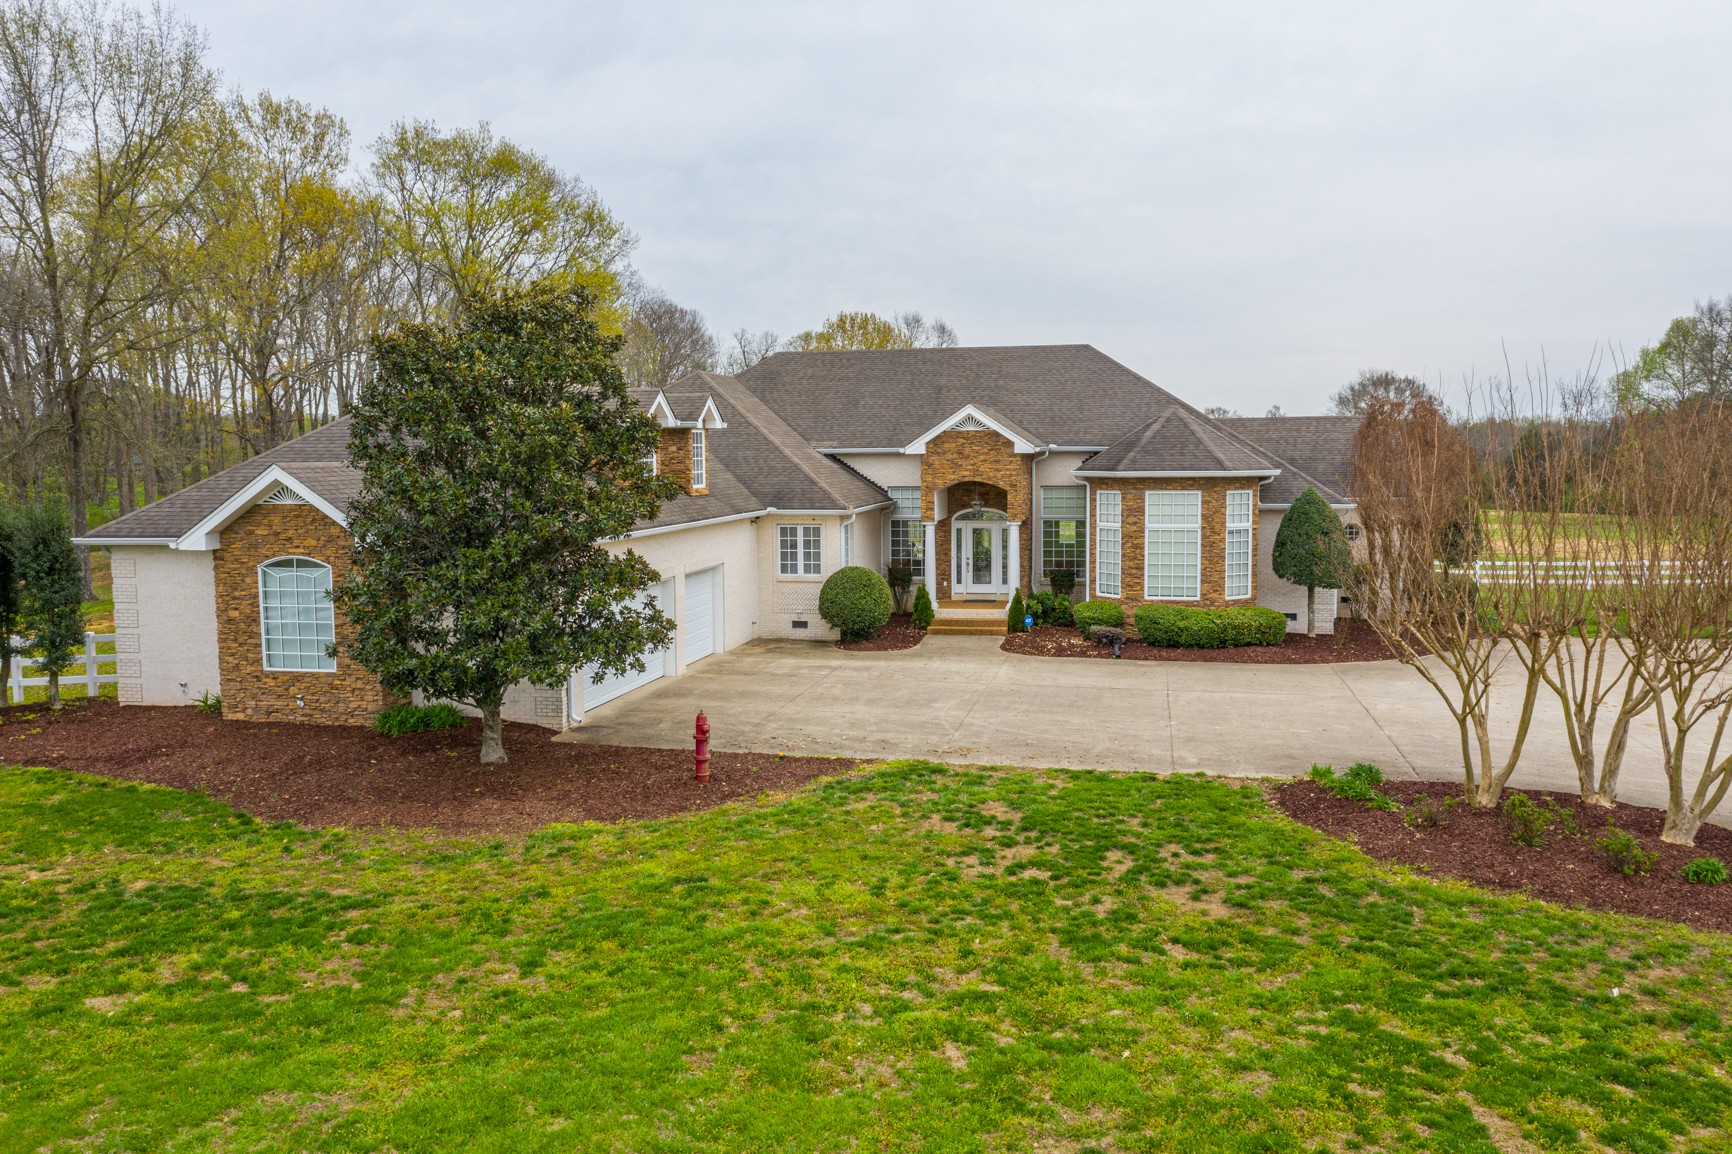 3981 Horn Springs Rd, Lebanon, TN 37087 - Lebanon, TN real estate listing